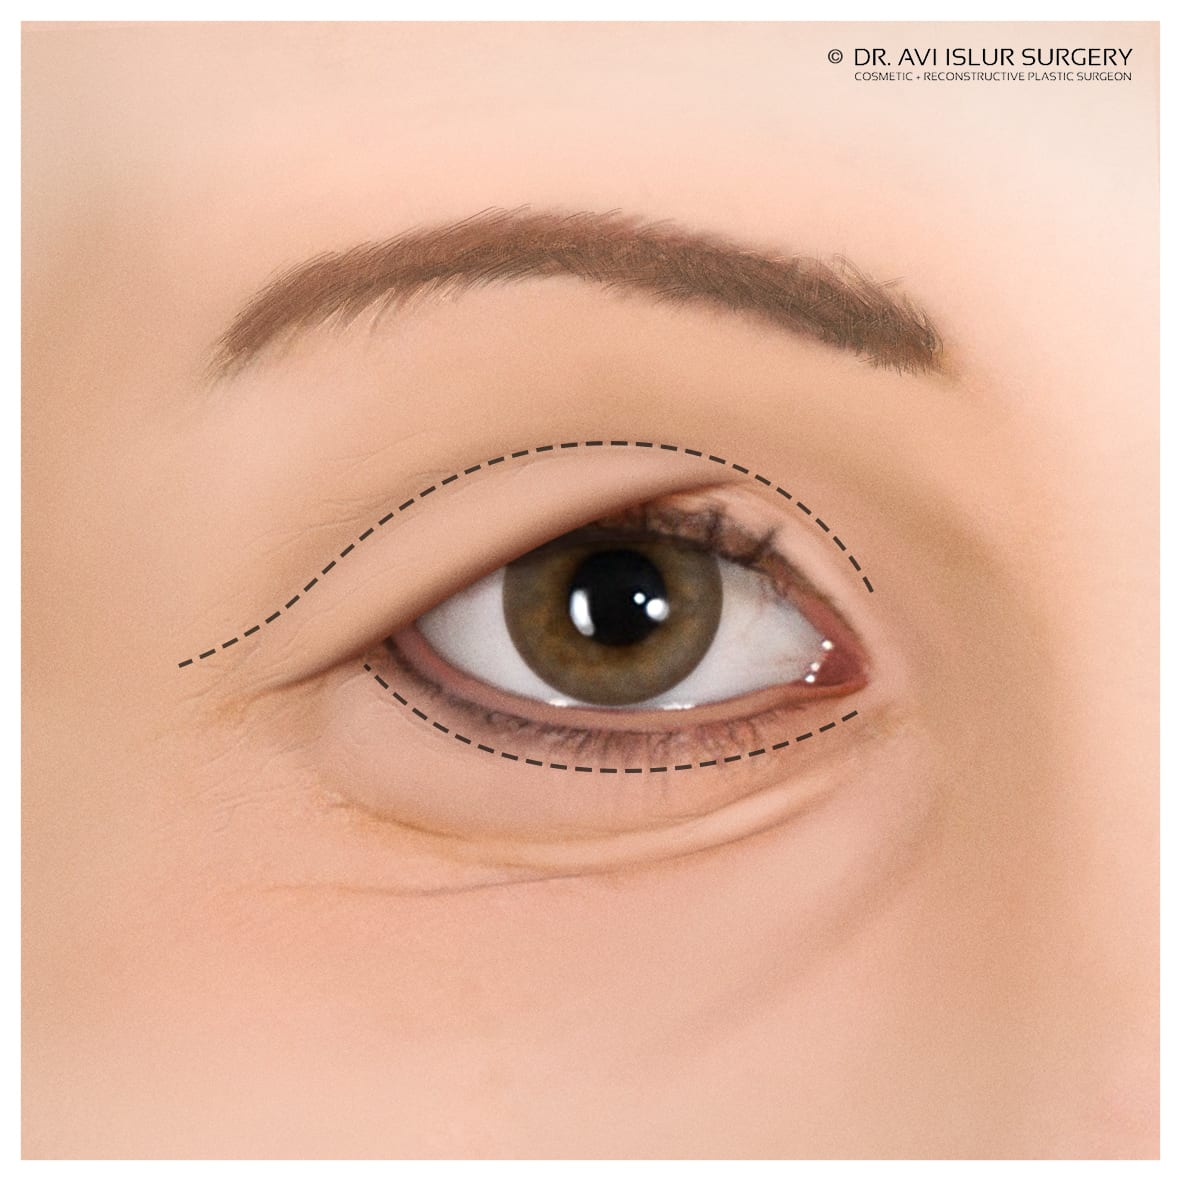 Illustration of markings for eyelid surgery